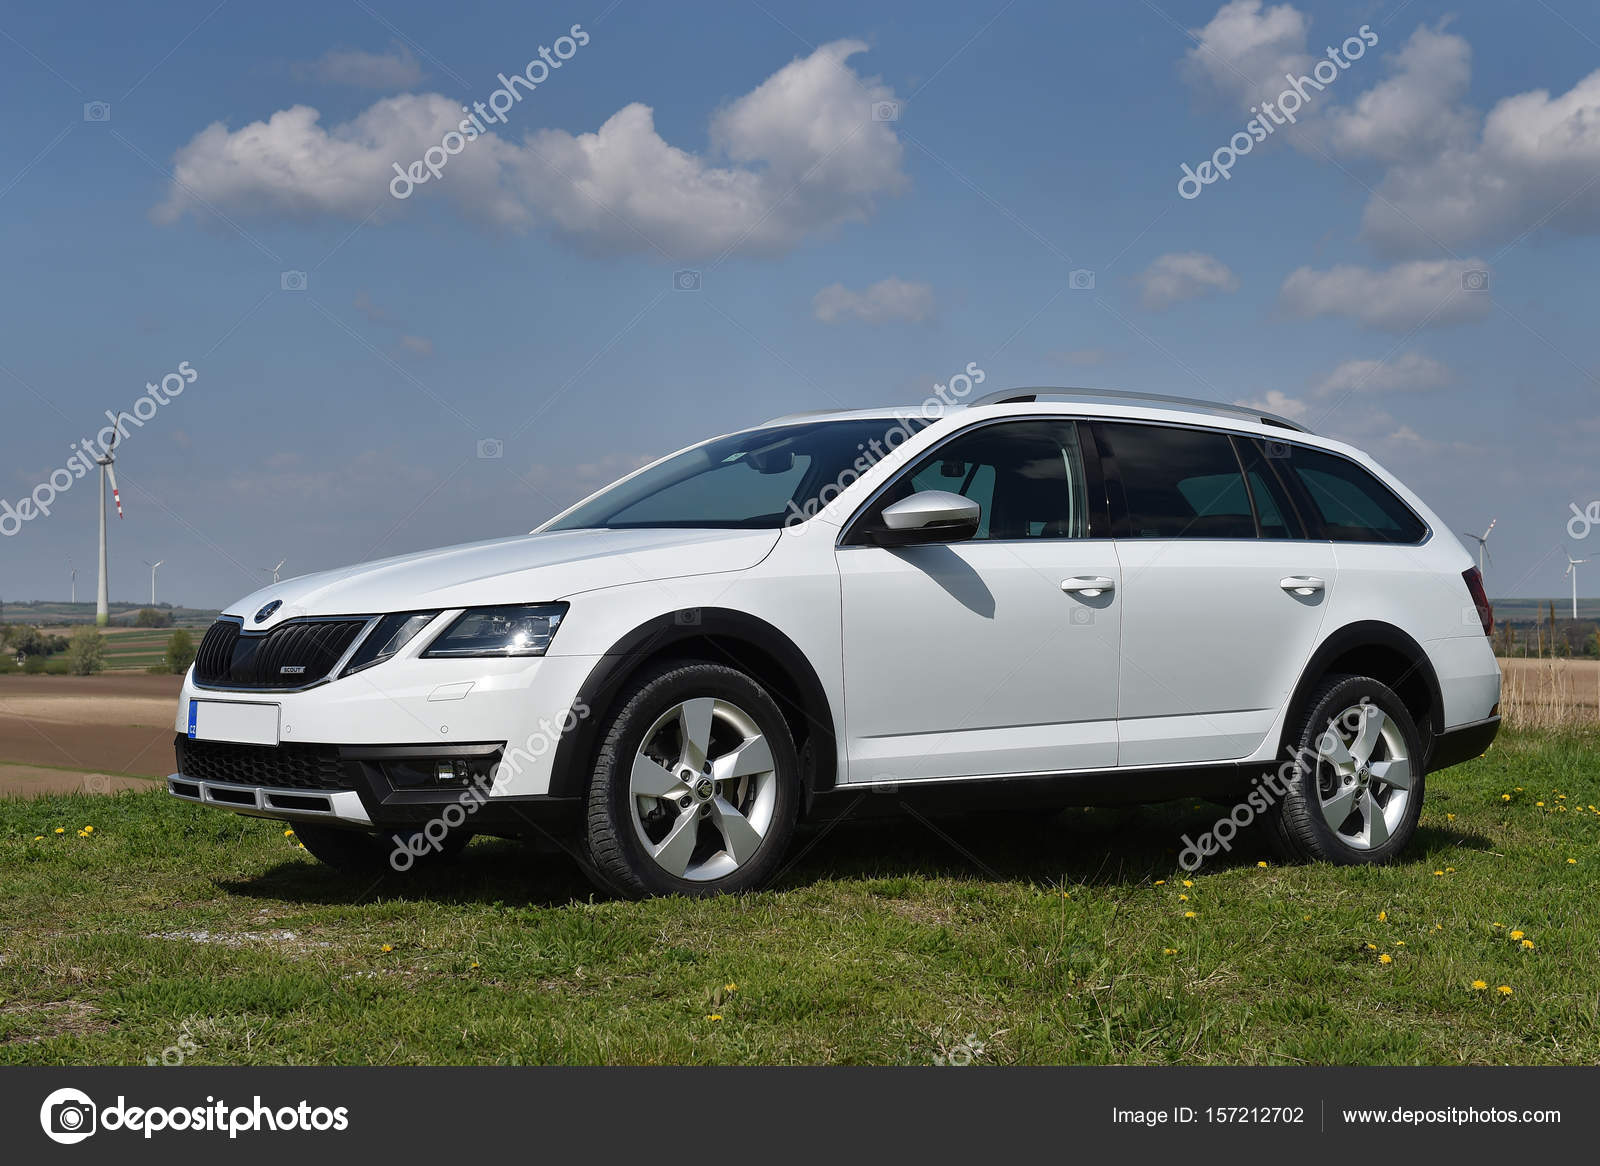 skoda octavia scout redaktionelles stockfoto yakub88 157212702. Black Bedroom Furniture Sets. Home Design Ideas